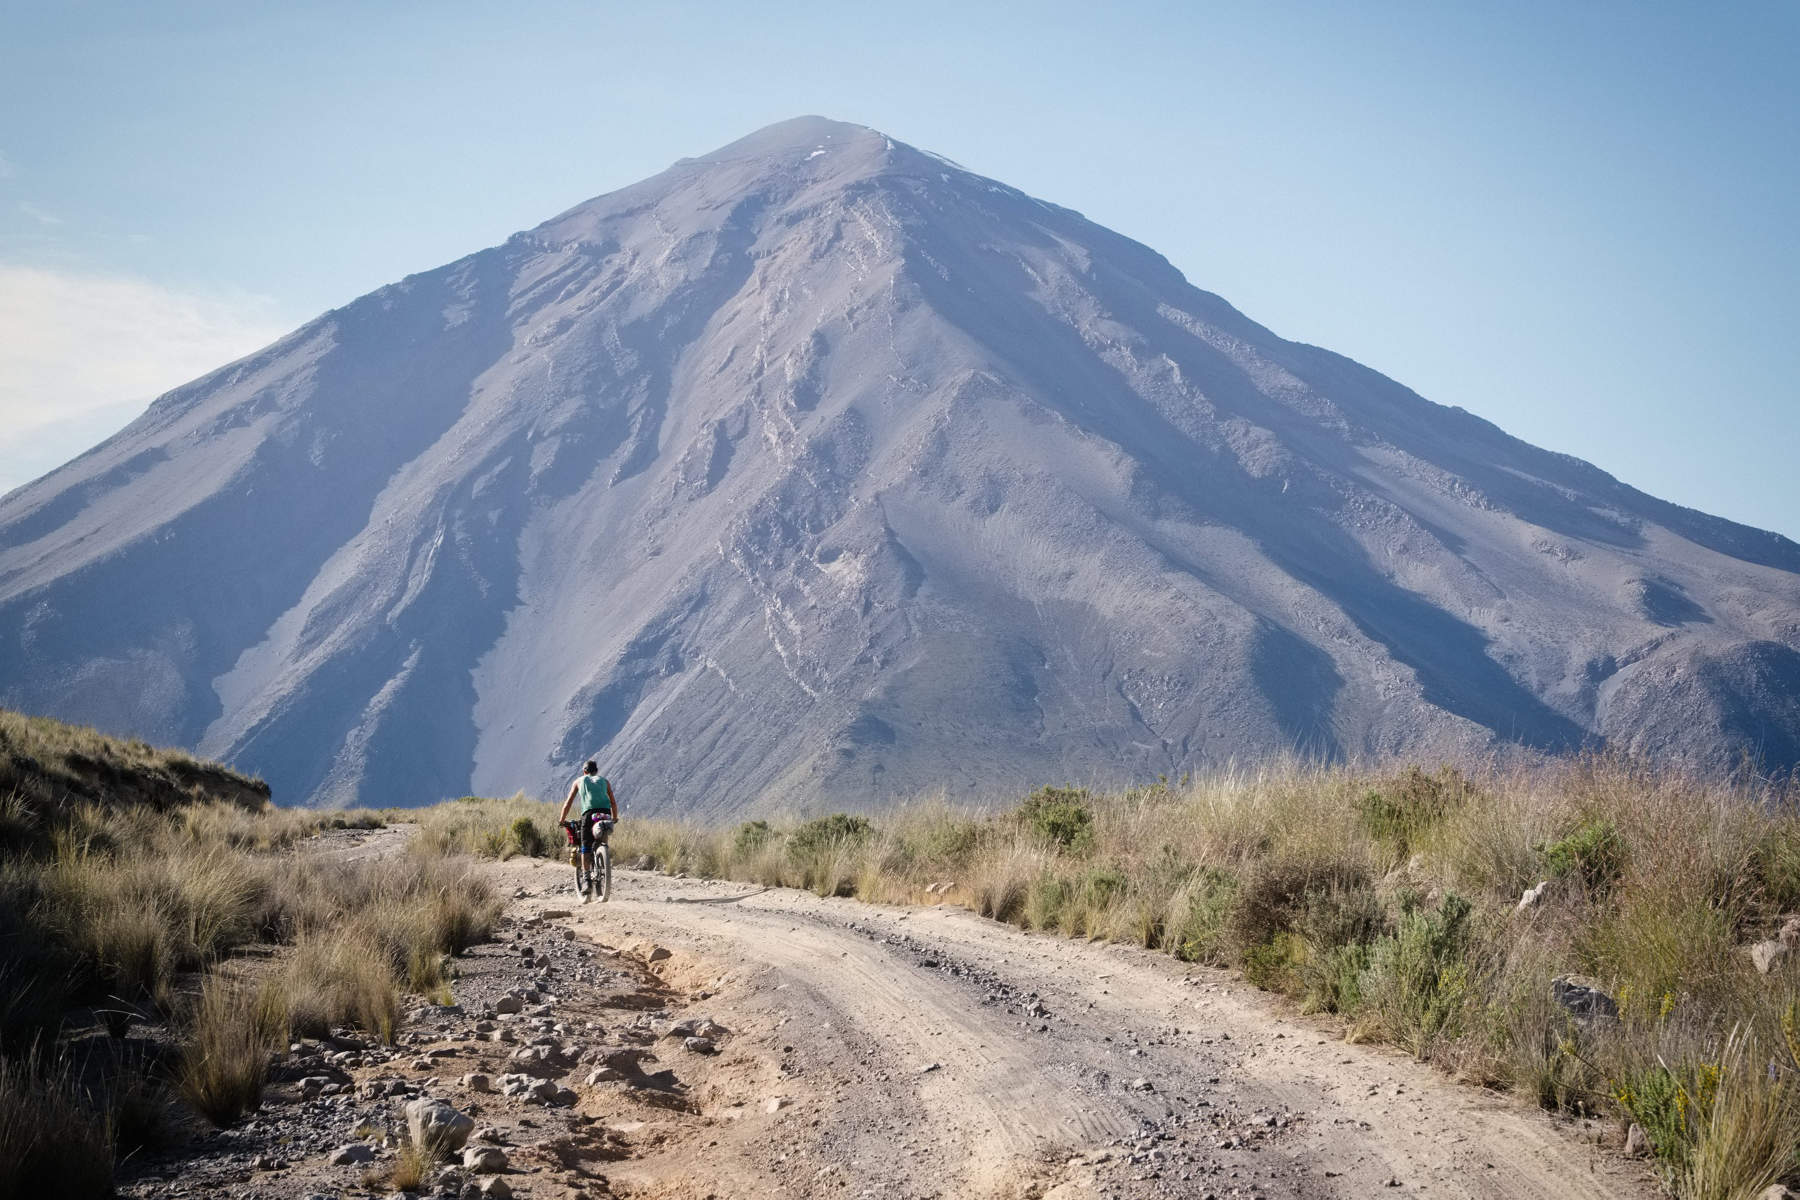 cycling past El Misti volcano